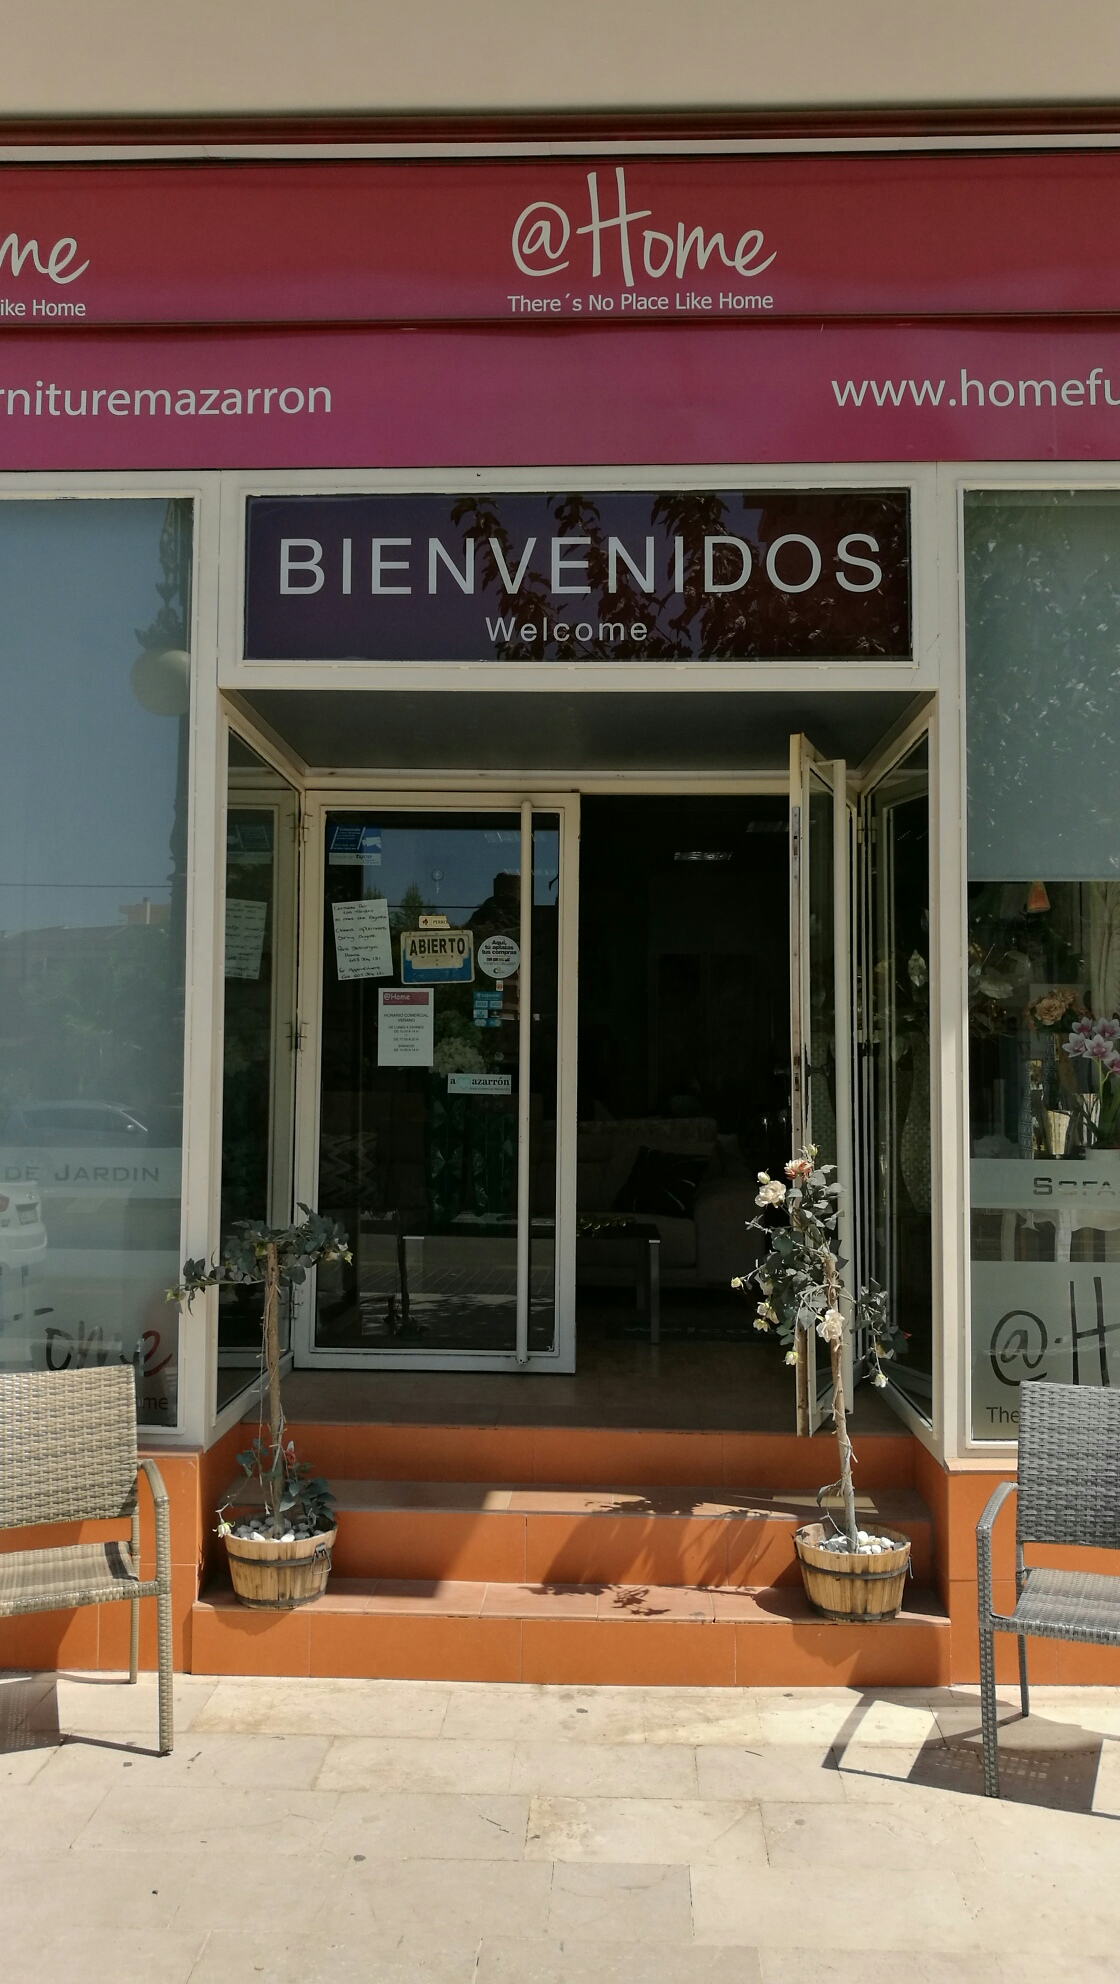 Home sof s colchones muebles mazarr n discover in murcia - Home colchones ...